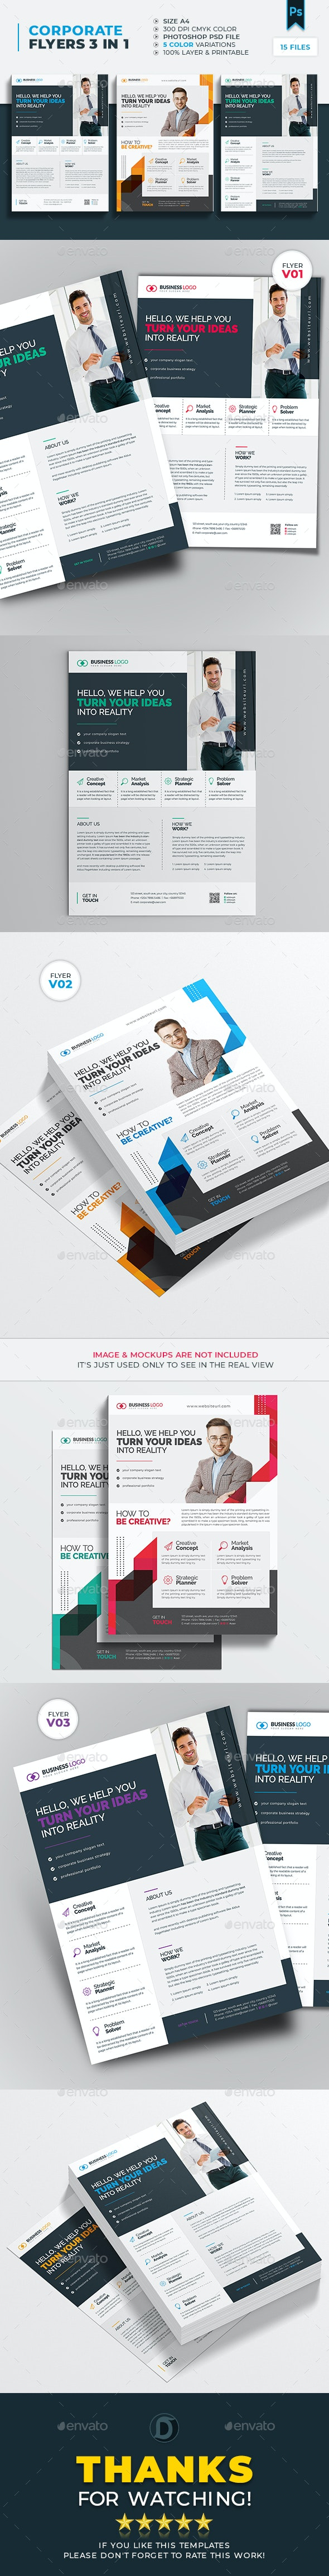 Corporate Flyer 3 in 1 Templates - Corporate Business Cards